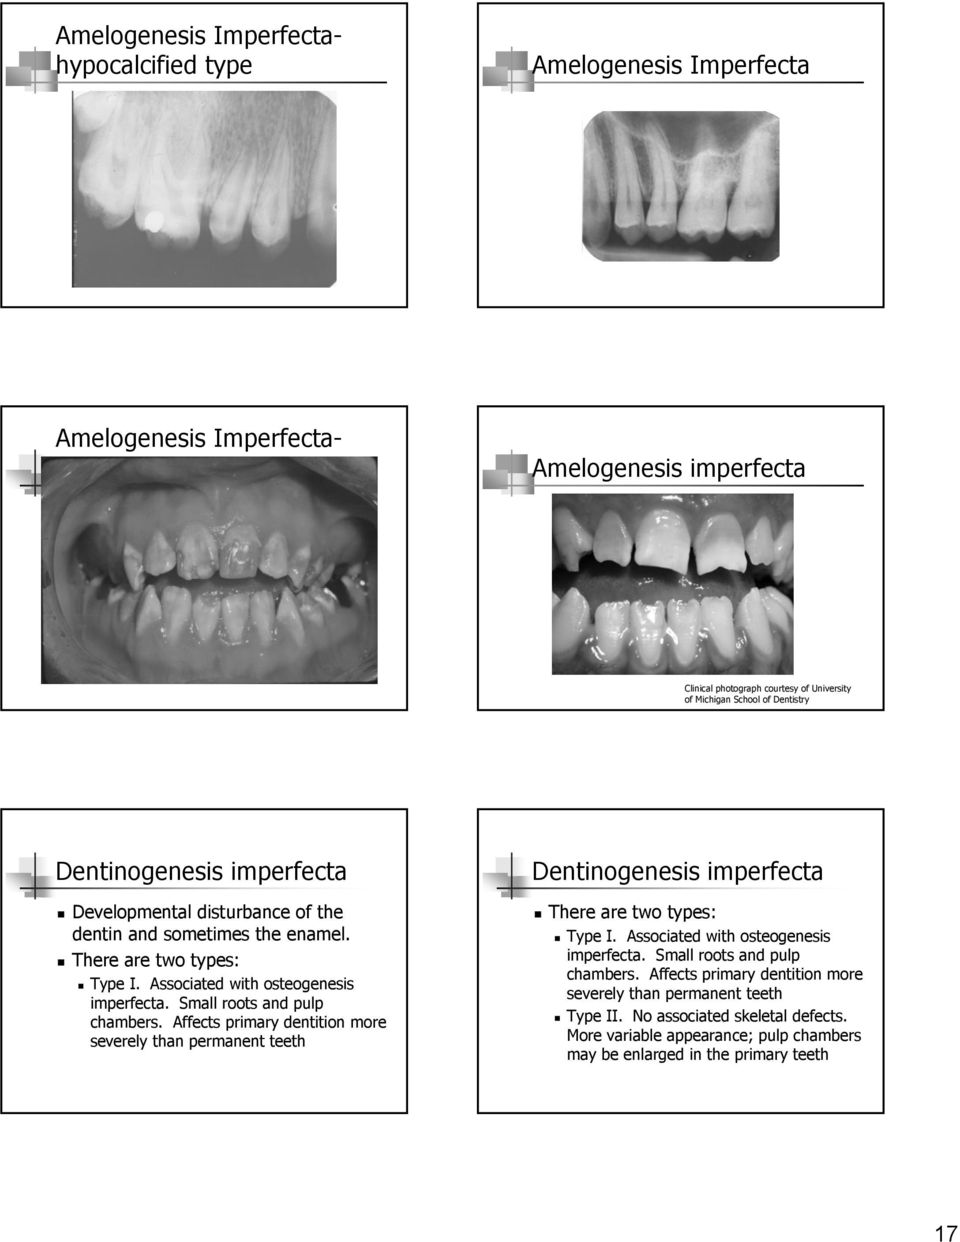 Small roots and pulp chambers. Affects primary dentition more severely than permanent teeth Dentinogenesis imperfecta! There are two types:! Type I. Associated with osteogenesis imperfecta.